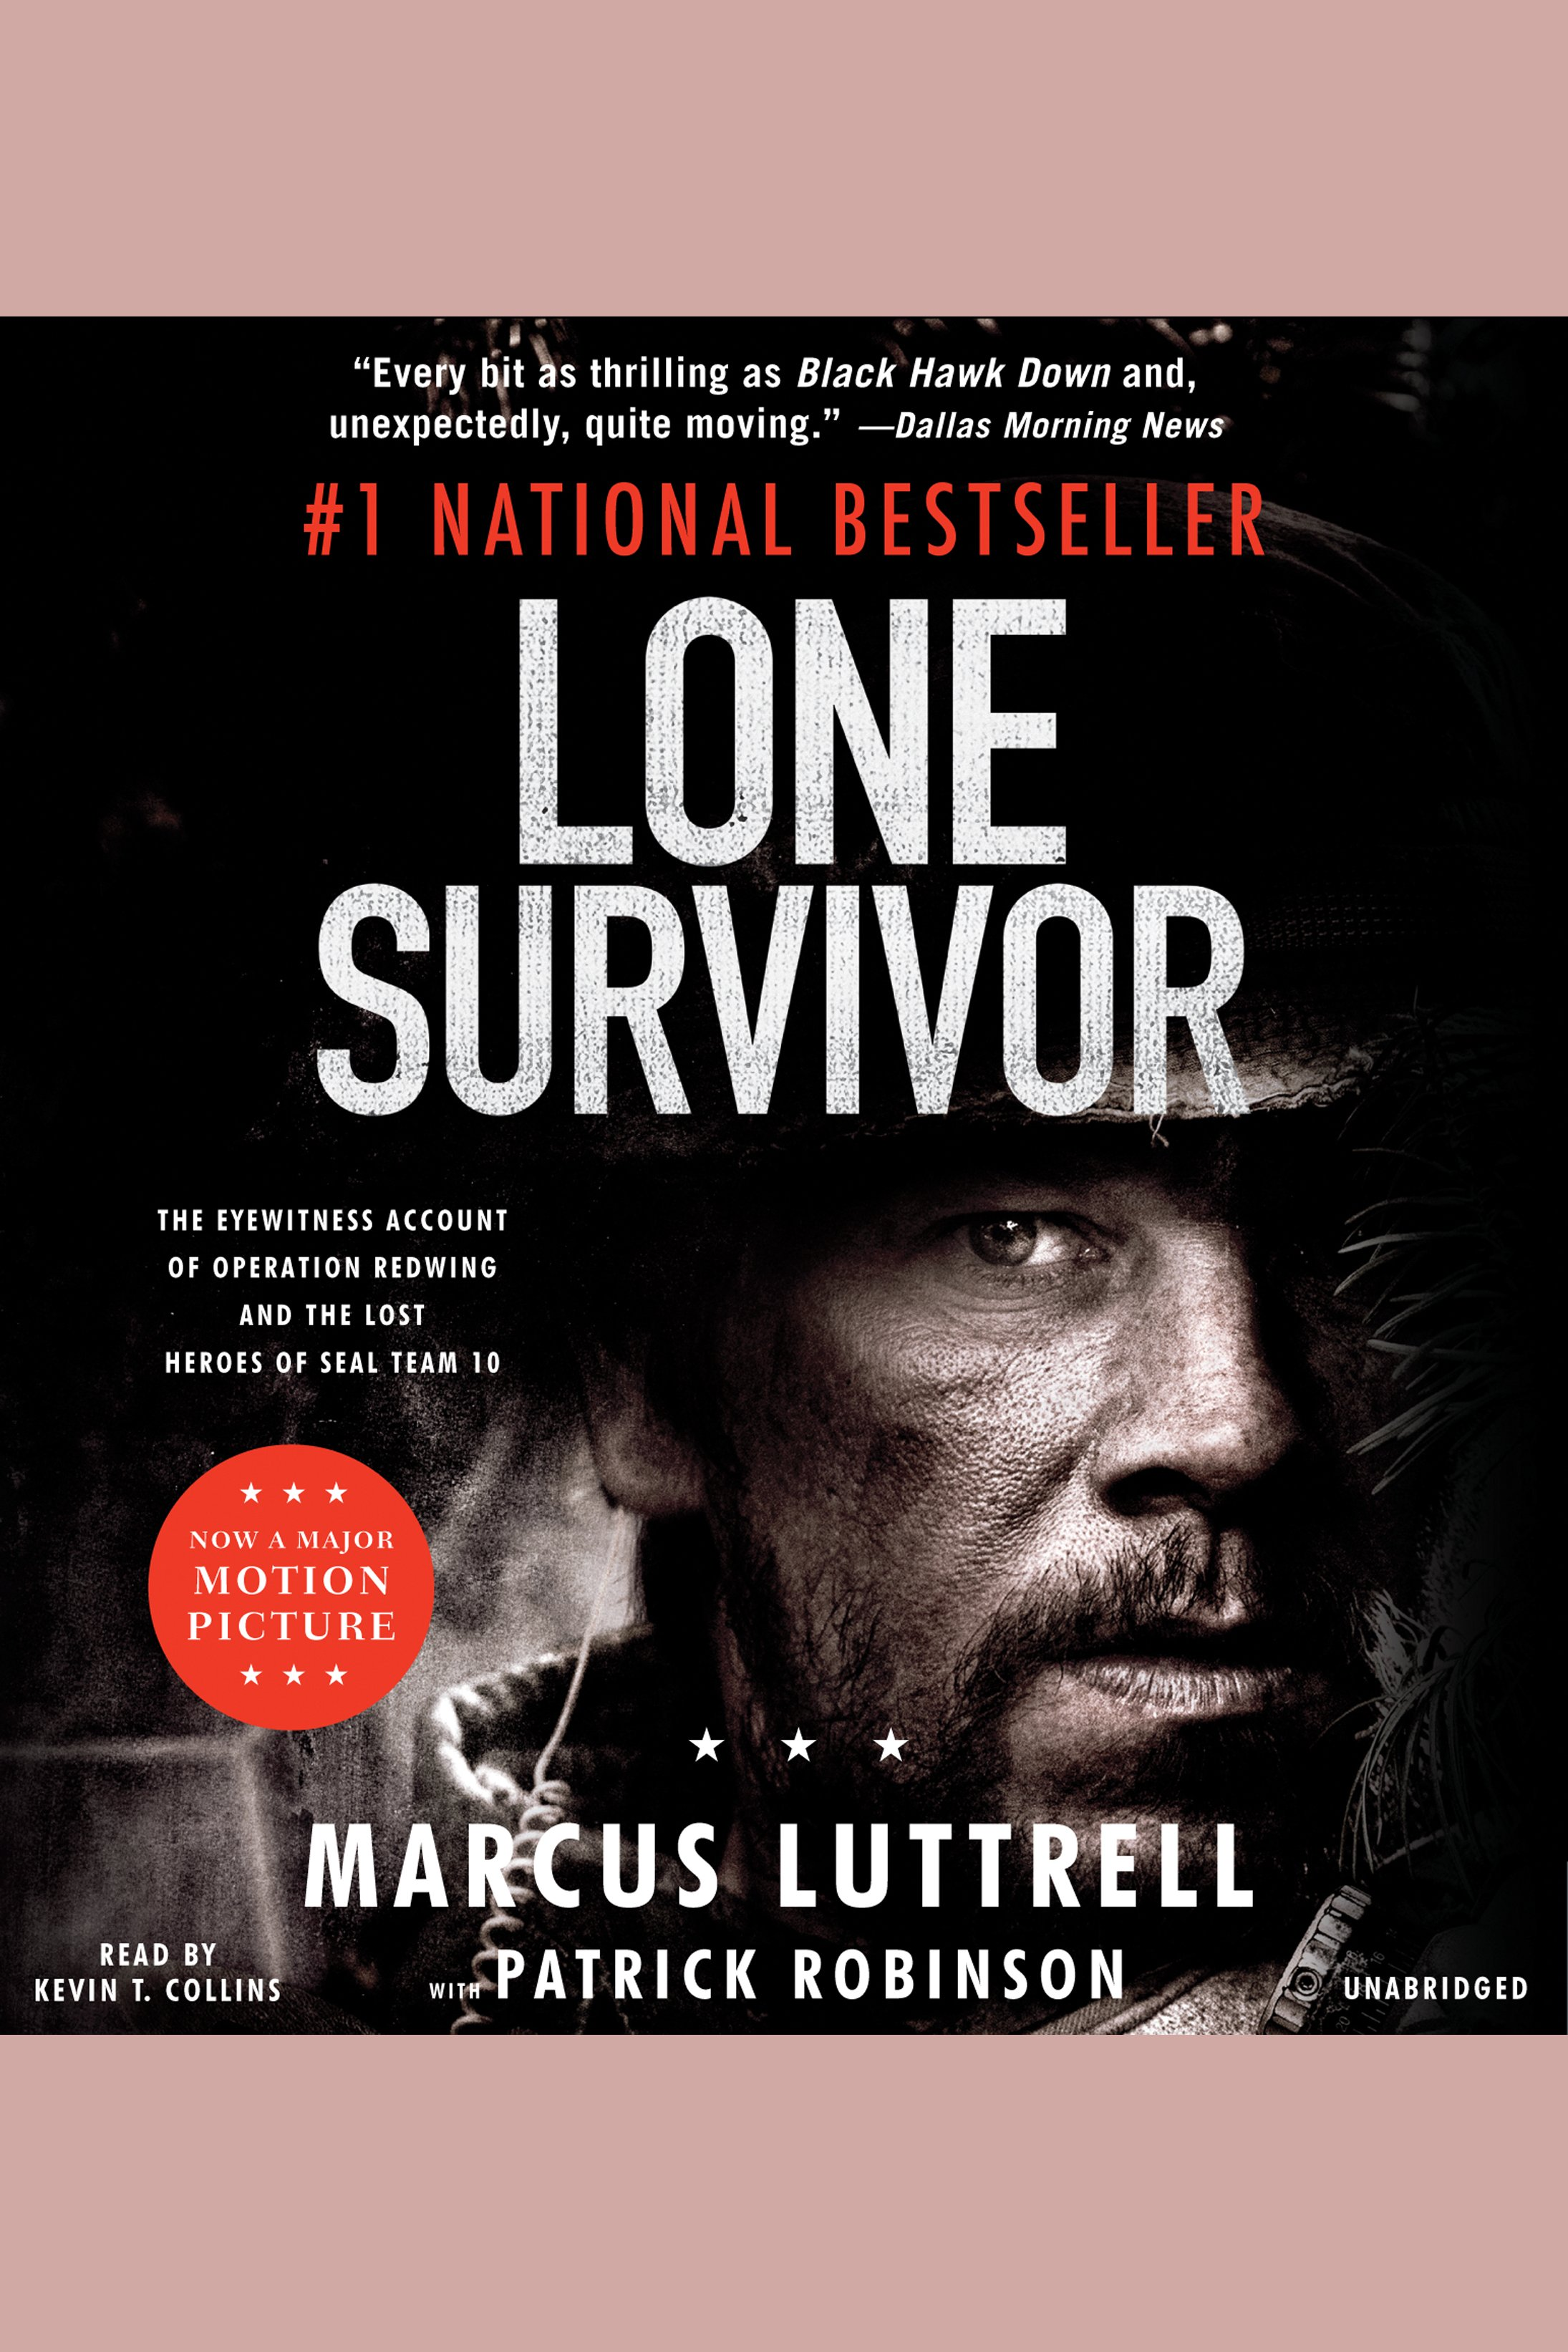 Lone survivor the eyewitness account of Operation Redwing and the lost heroes of SEAL team 10 cover image